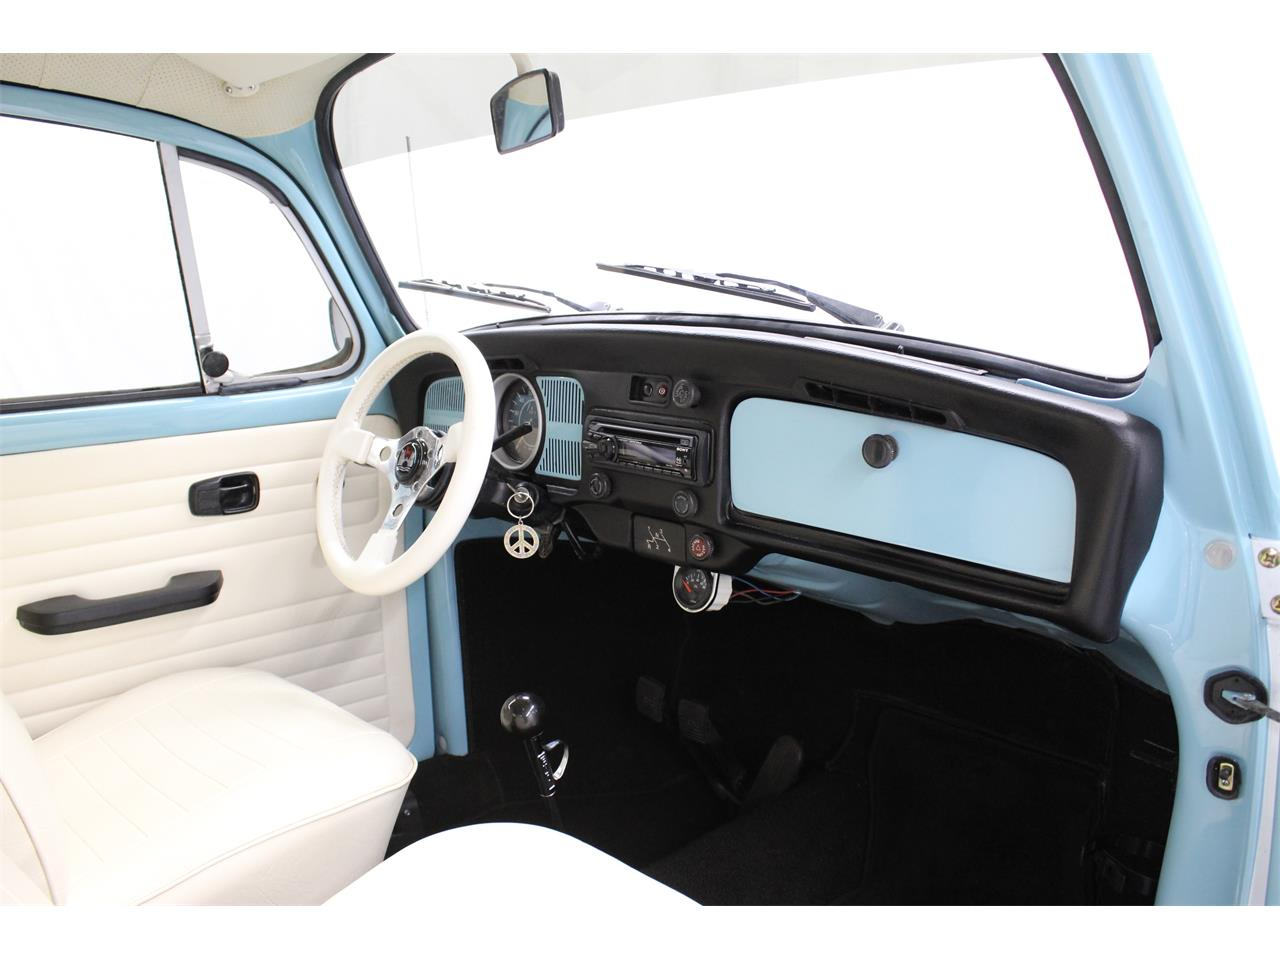 1974 Volkswagen Beetle for sale in Christiansburg, VA – photo 15